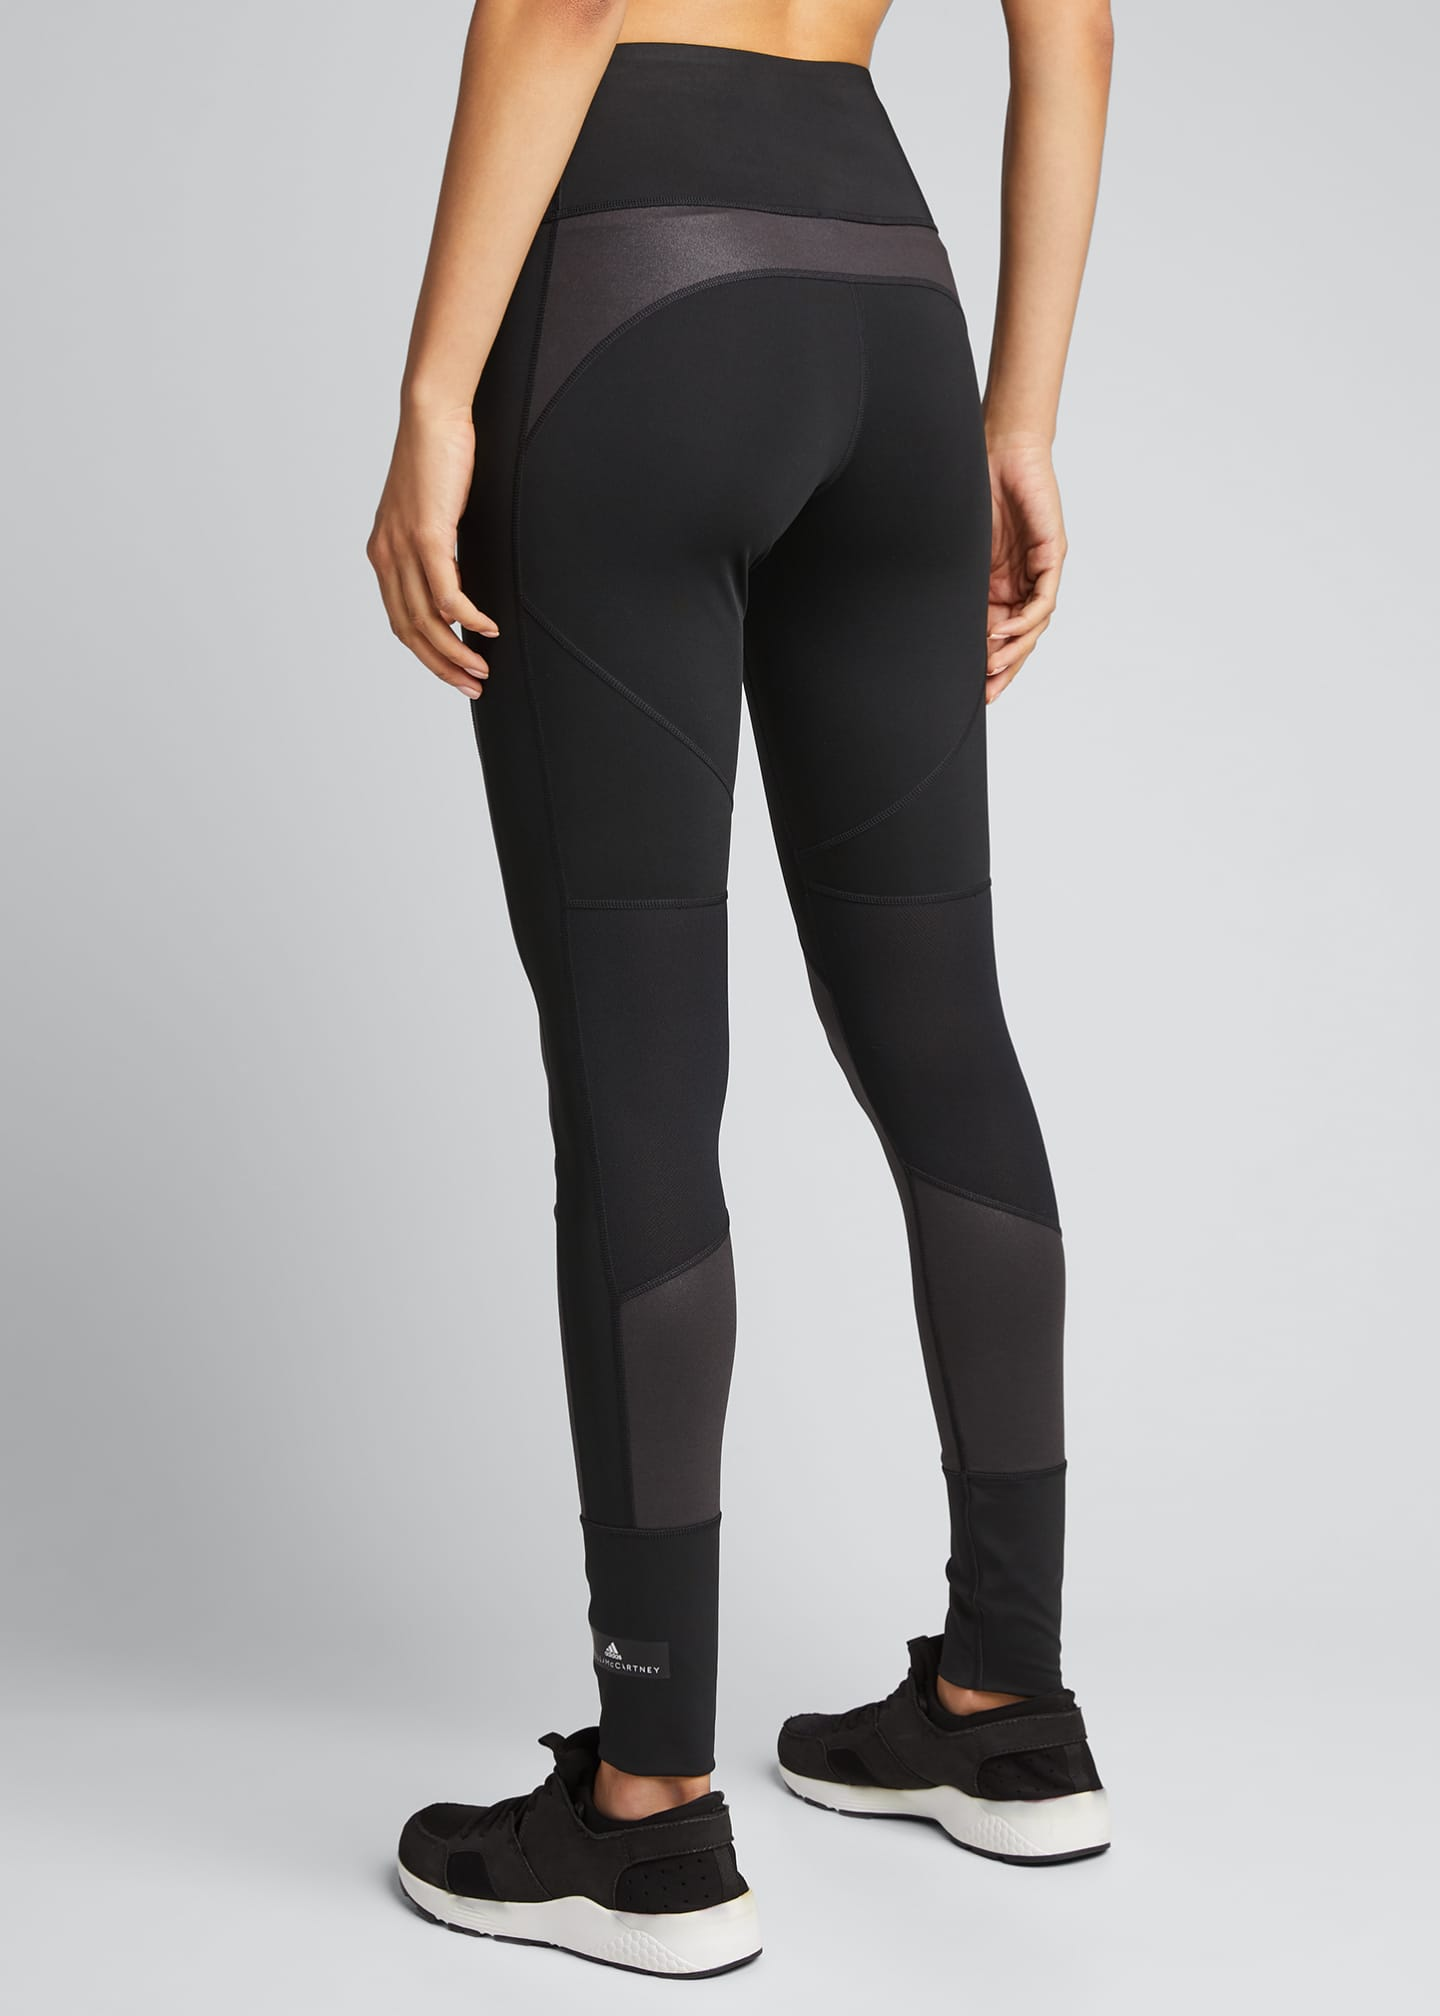 Image 2 of 5: Train BT Tights